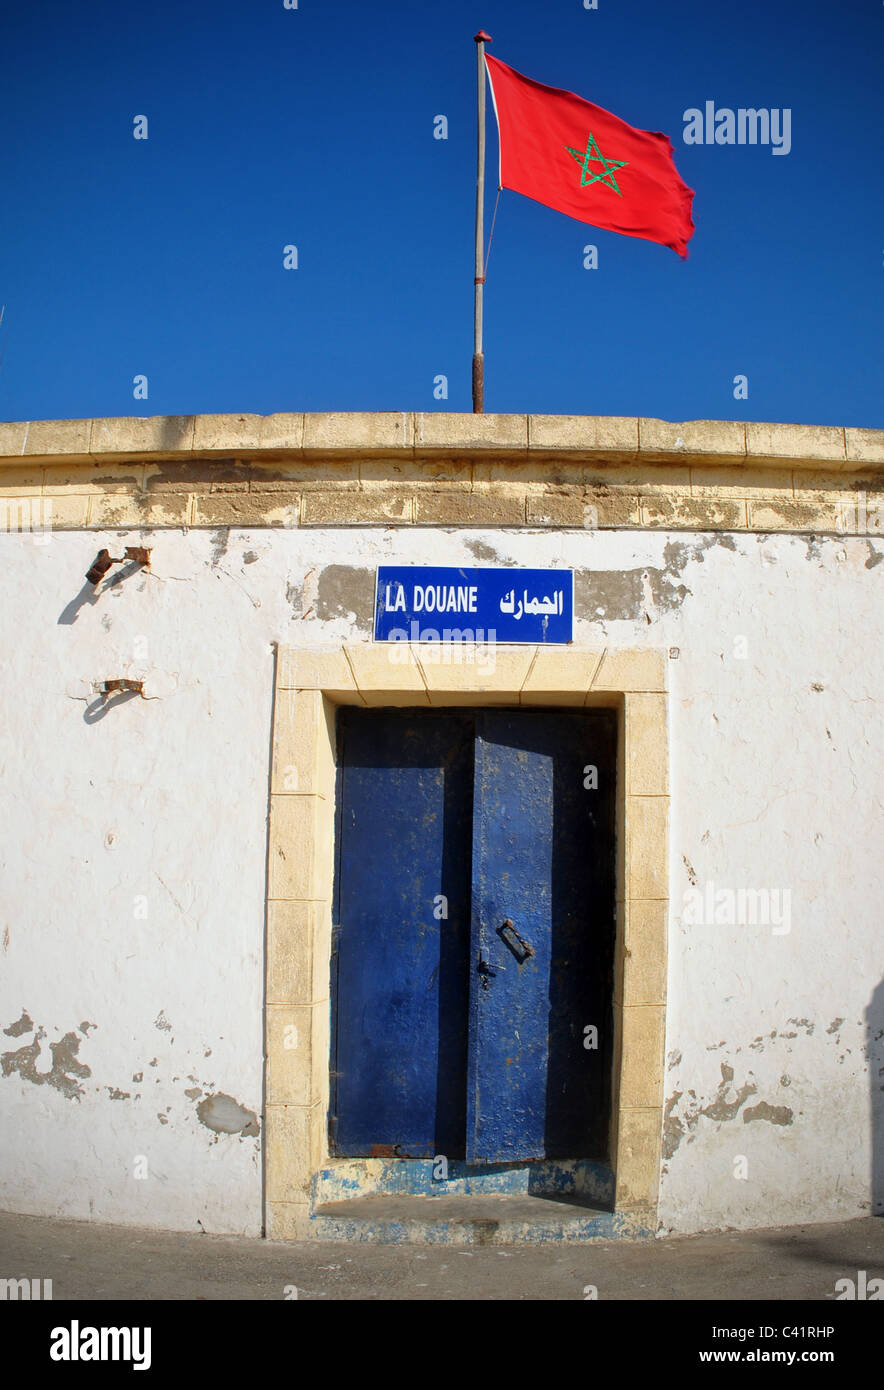 Customs office in Essaouira, Morocco - Stock Image